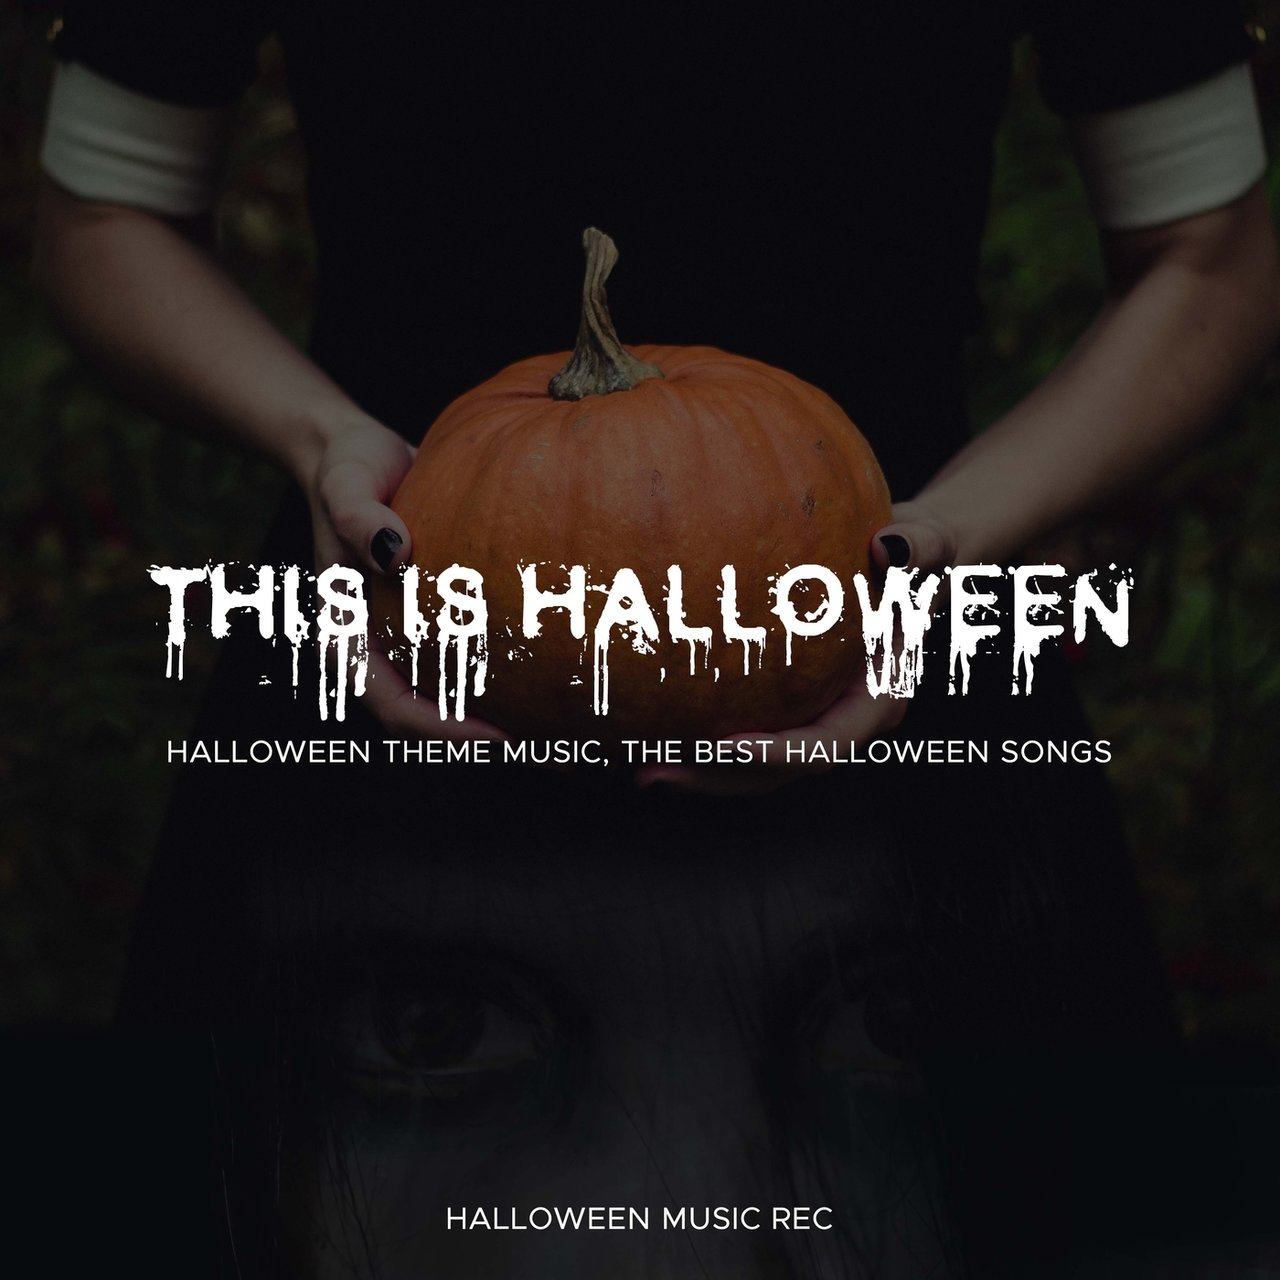 albums this is halloween halloween theme music the best halloween songs